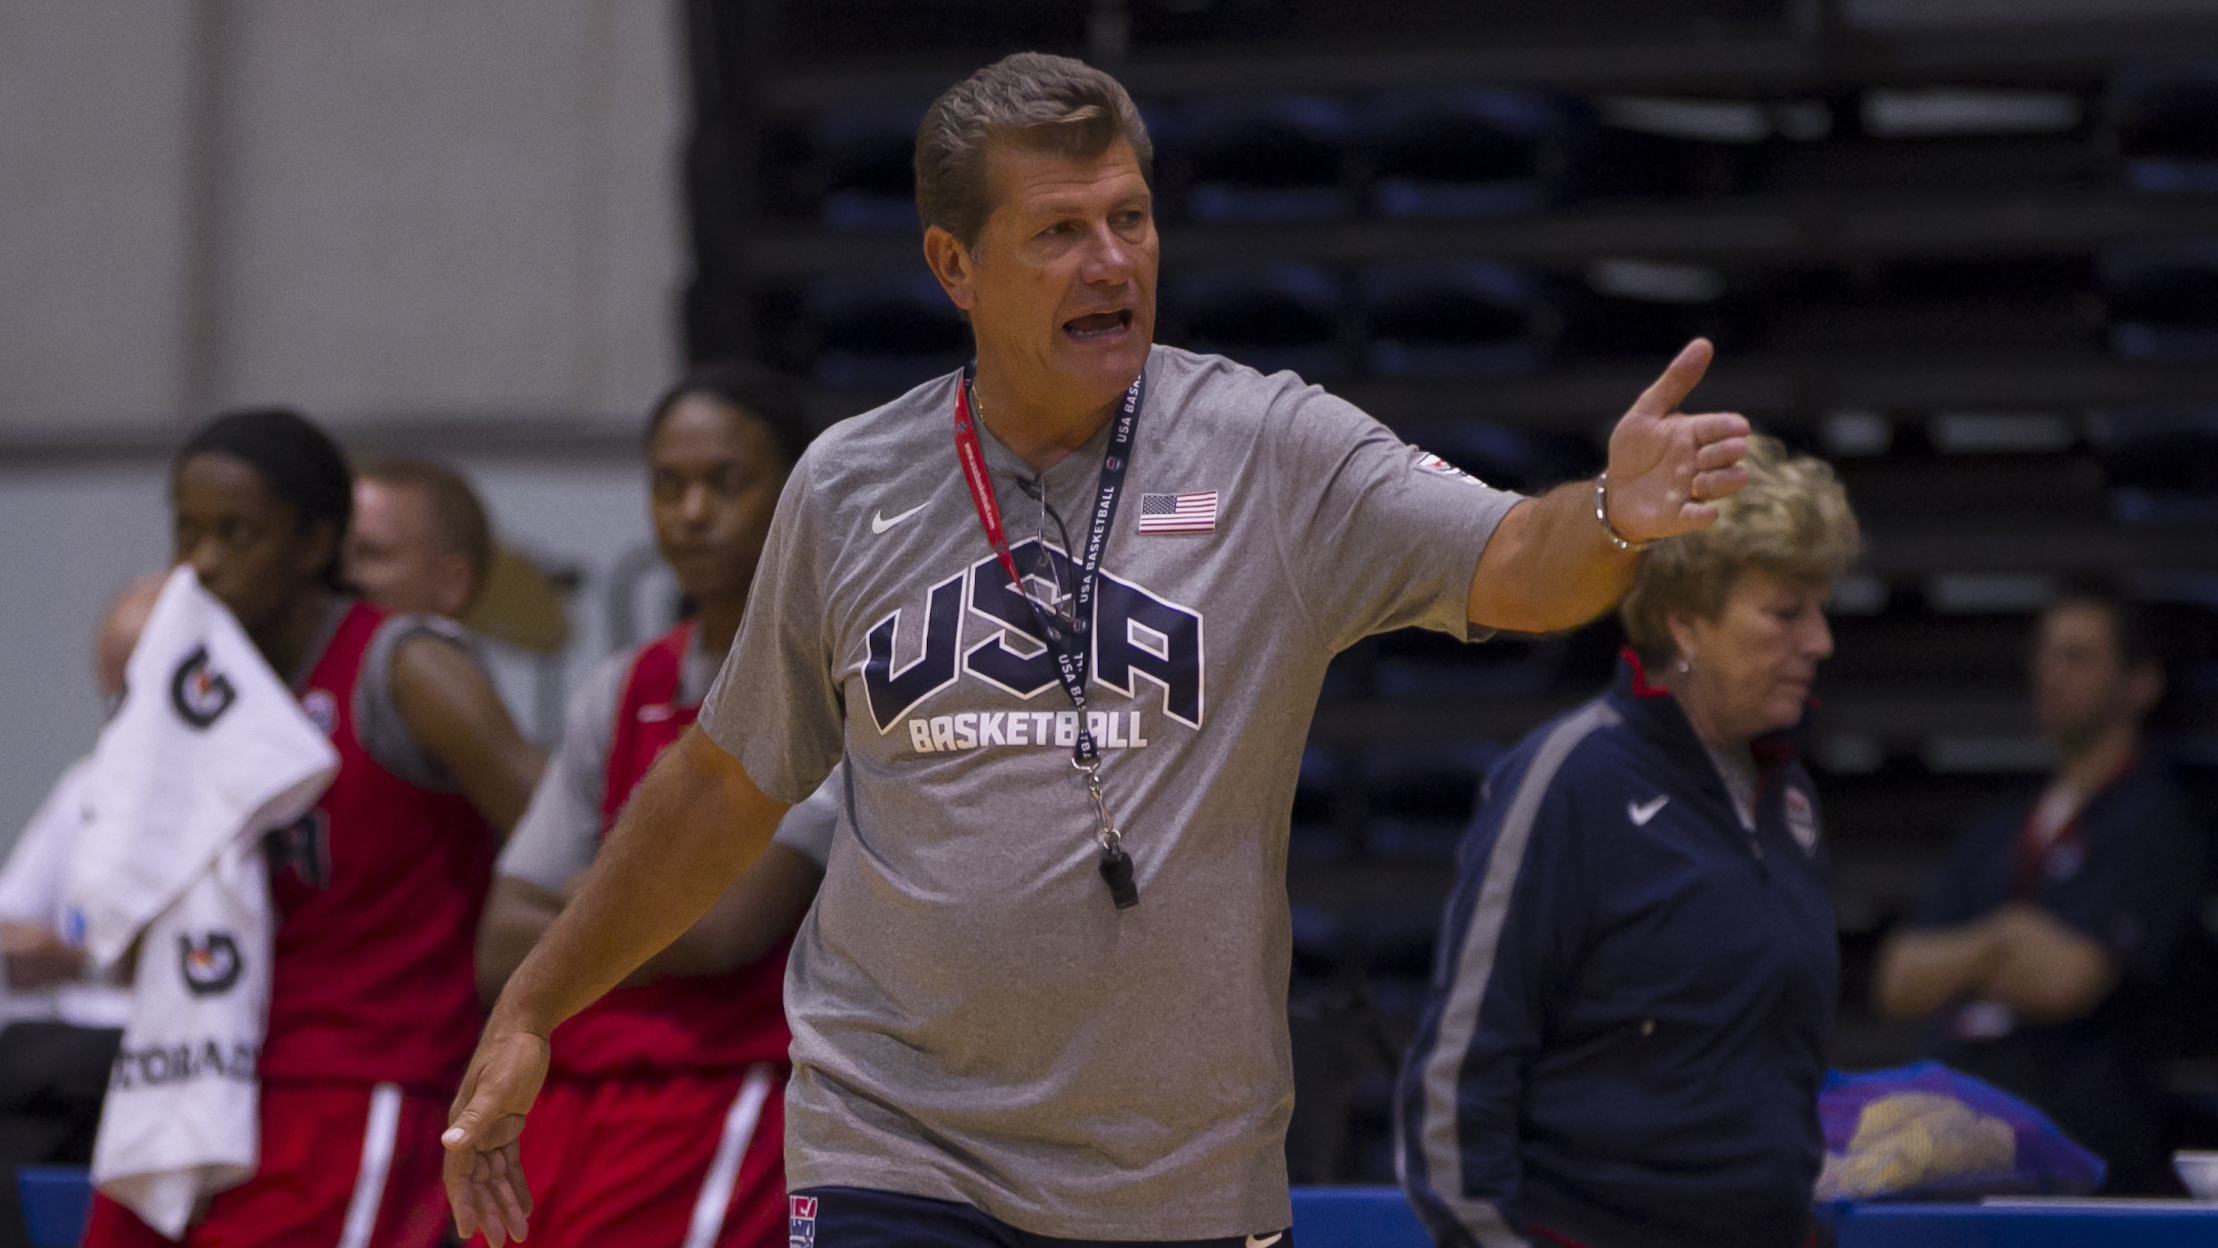 Geno Auriemma talks about his Olympic experience as head coach and his future with USA Basketball